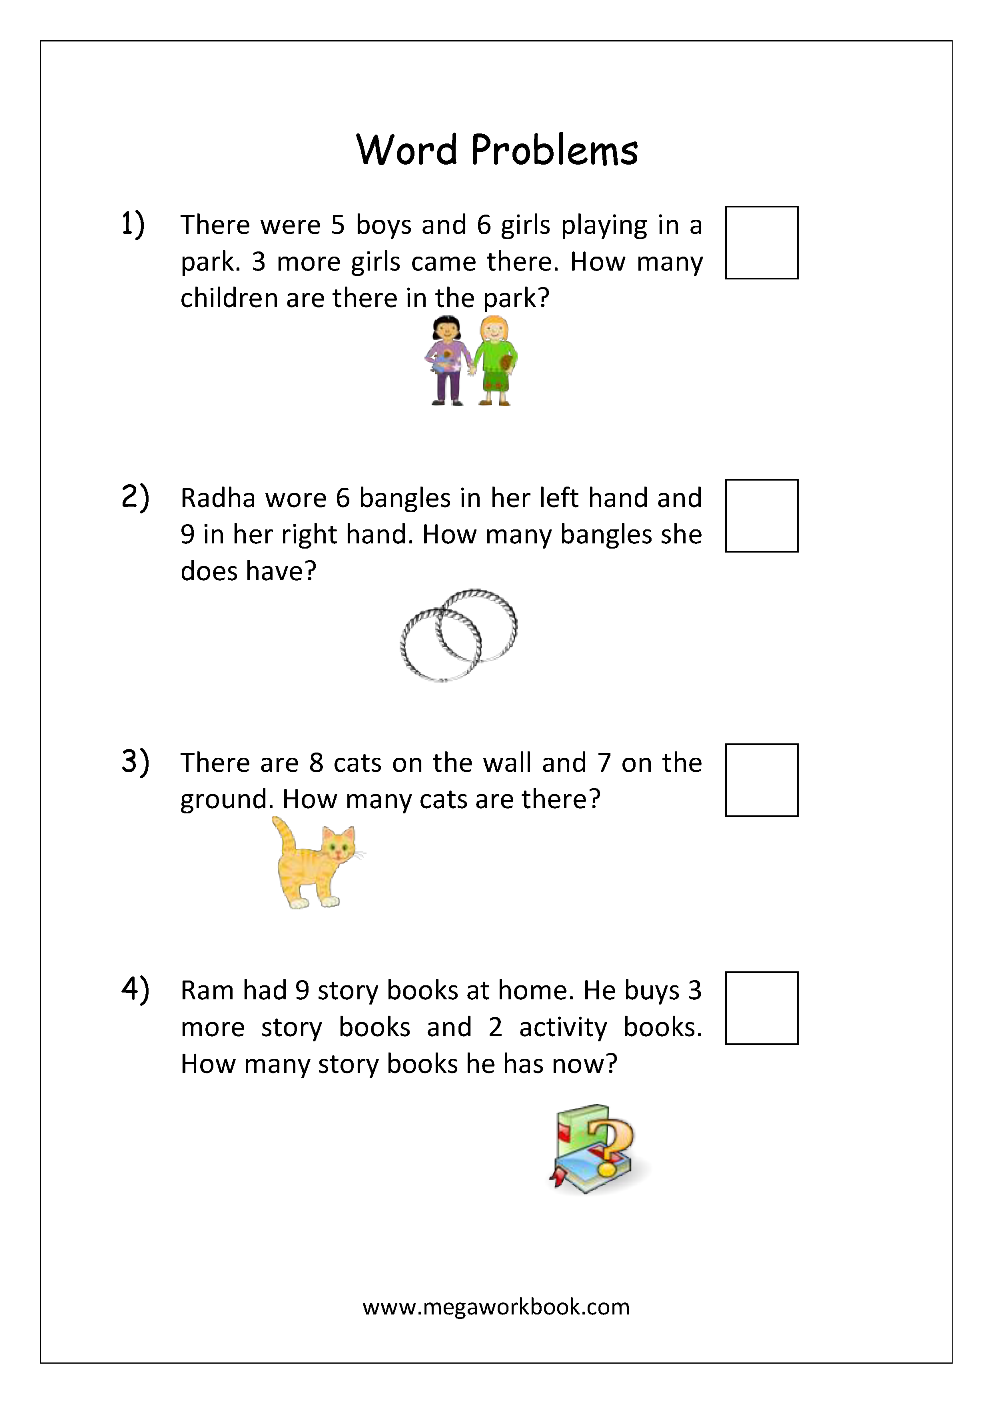 Word Problems MegaWorkbook – Math Worksheets Word Problems